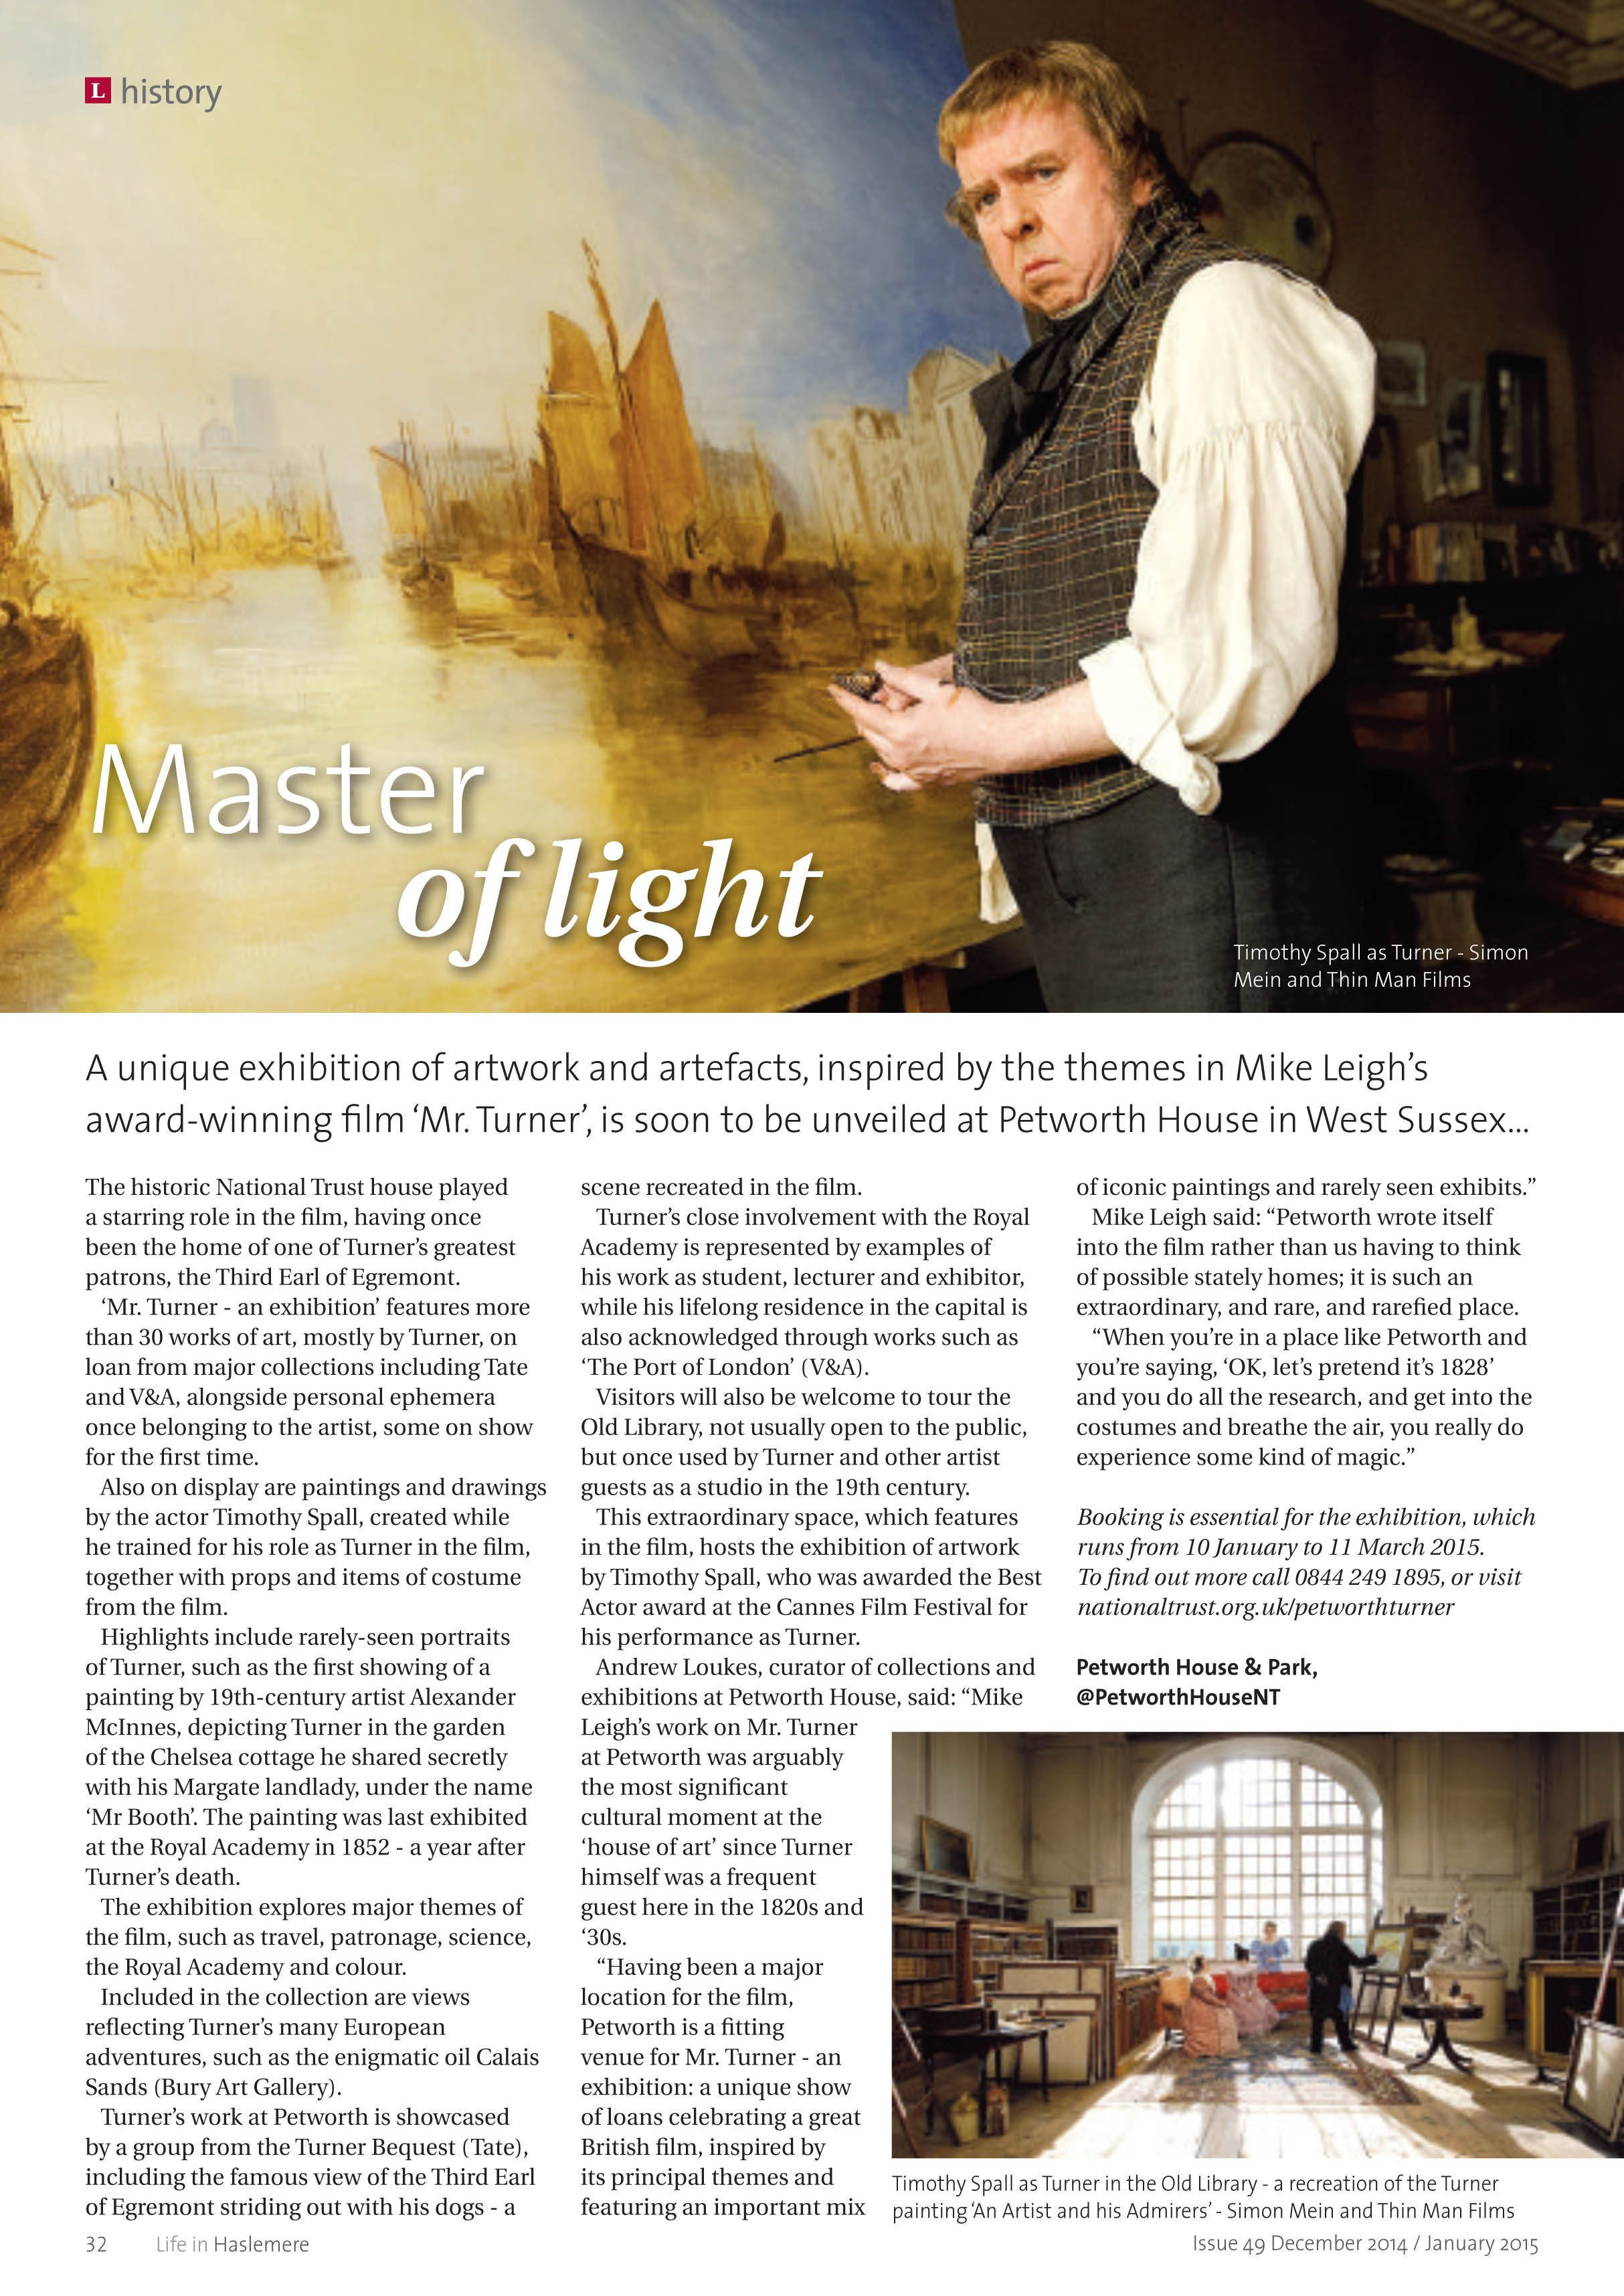 Master of light - JMW Turner exhibition at Petworth House